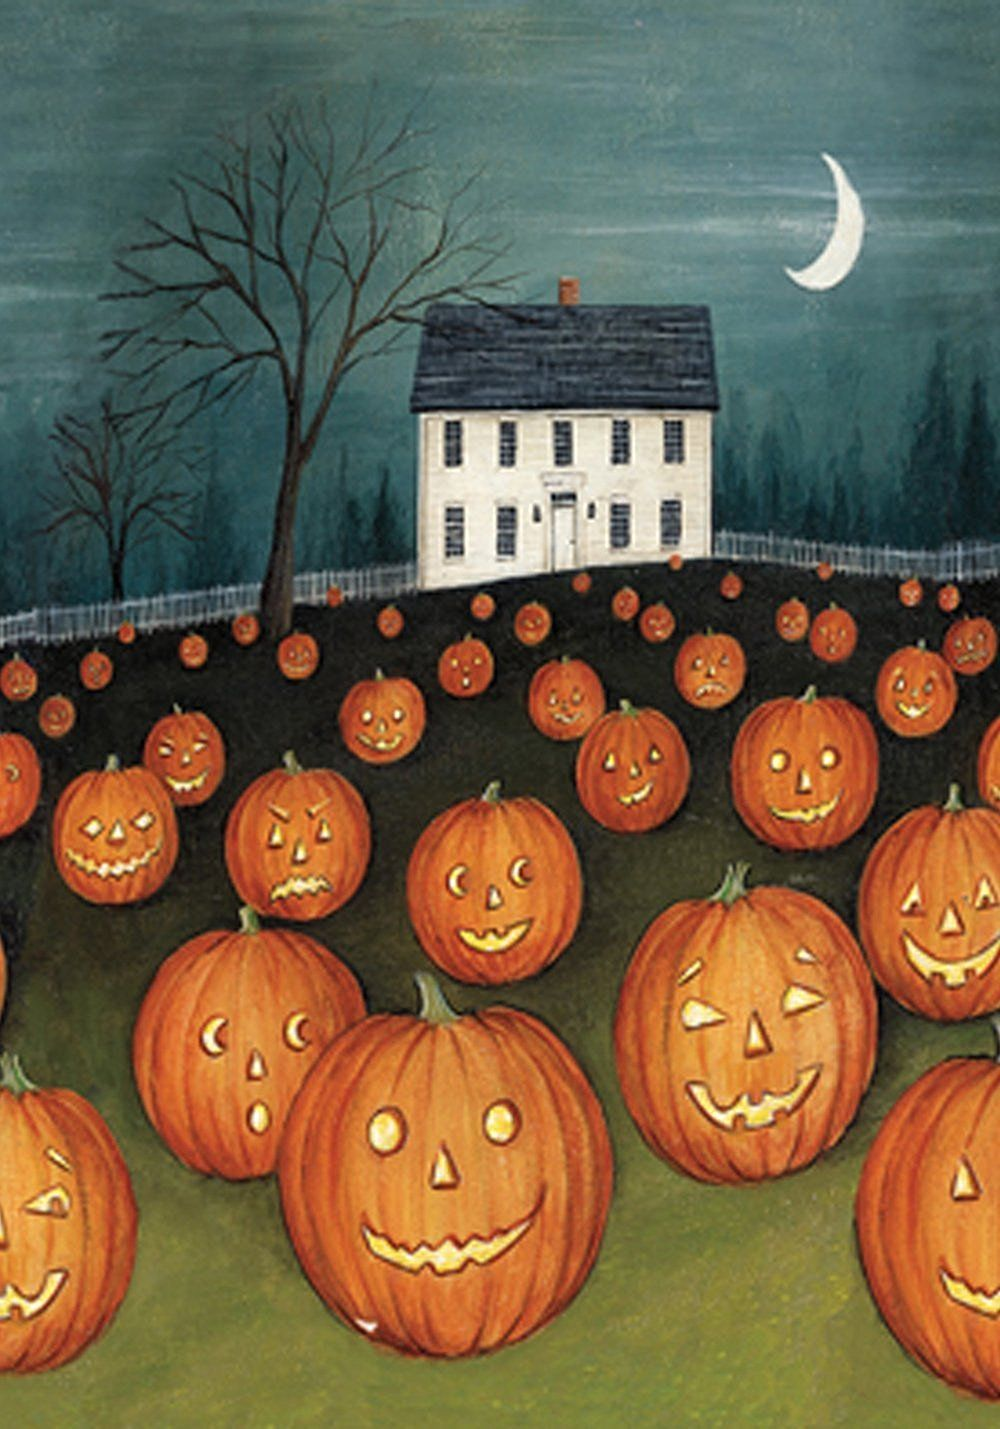 amazon com toland pumpkin hollow house decorative spooky